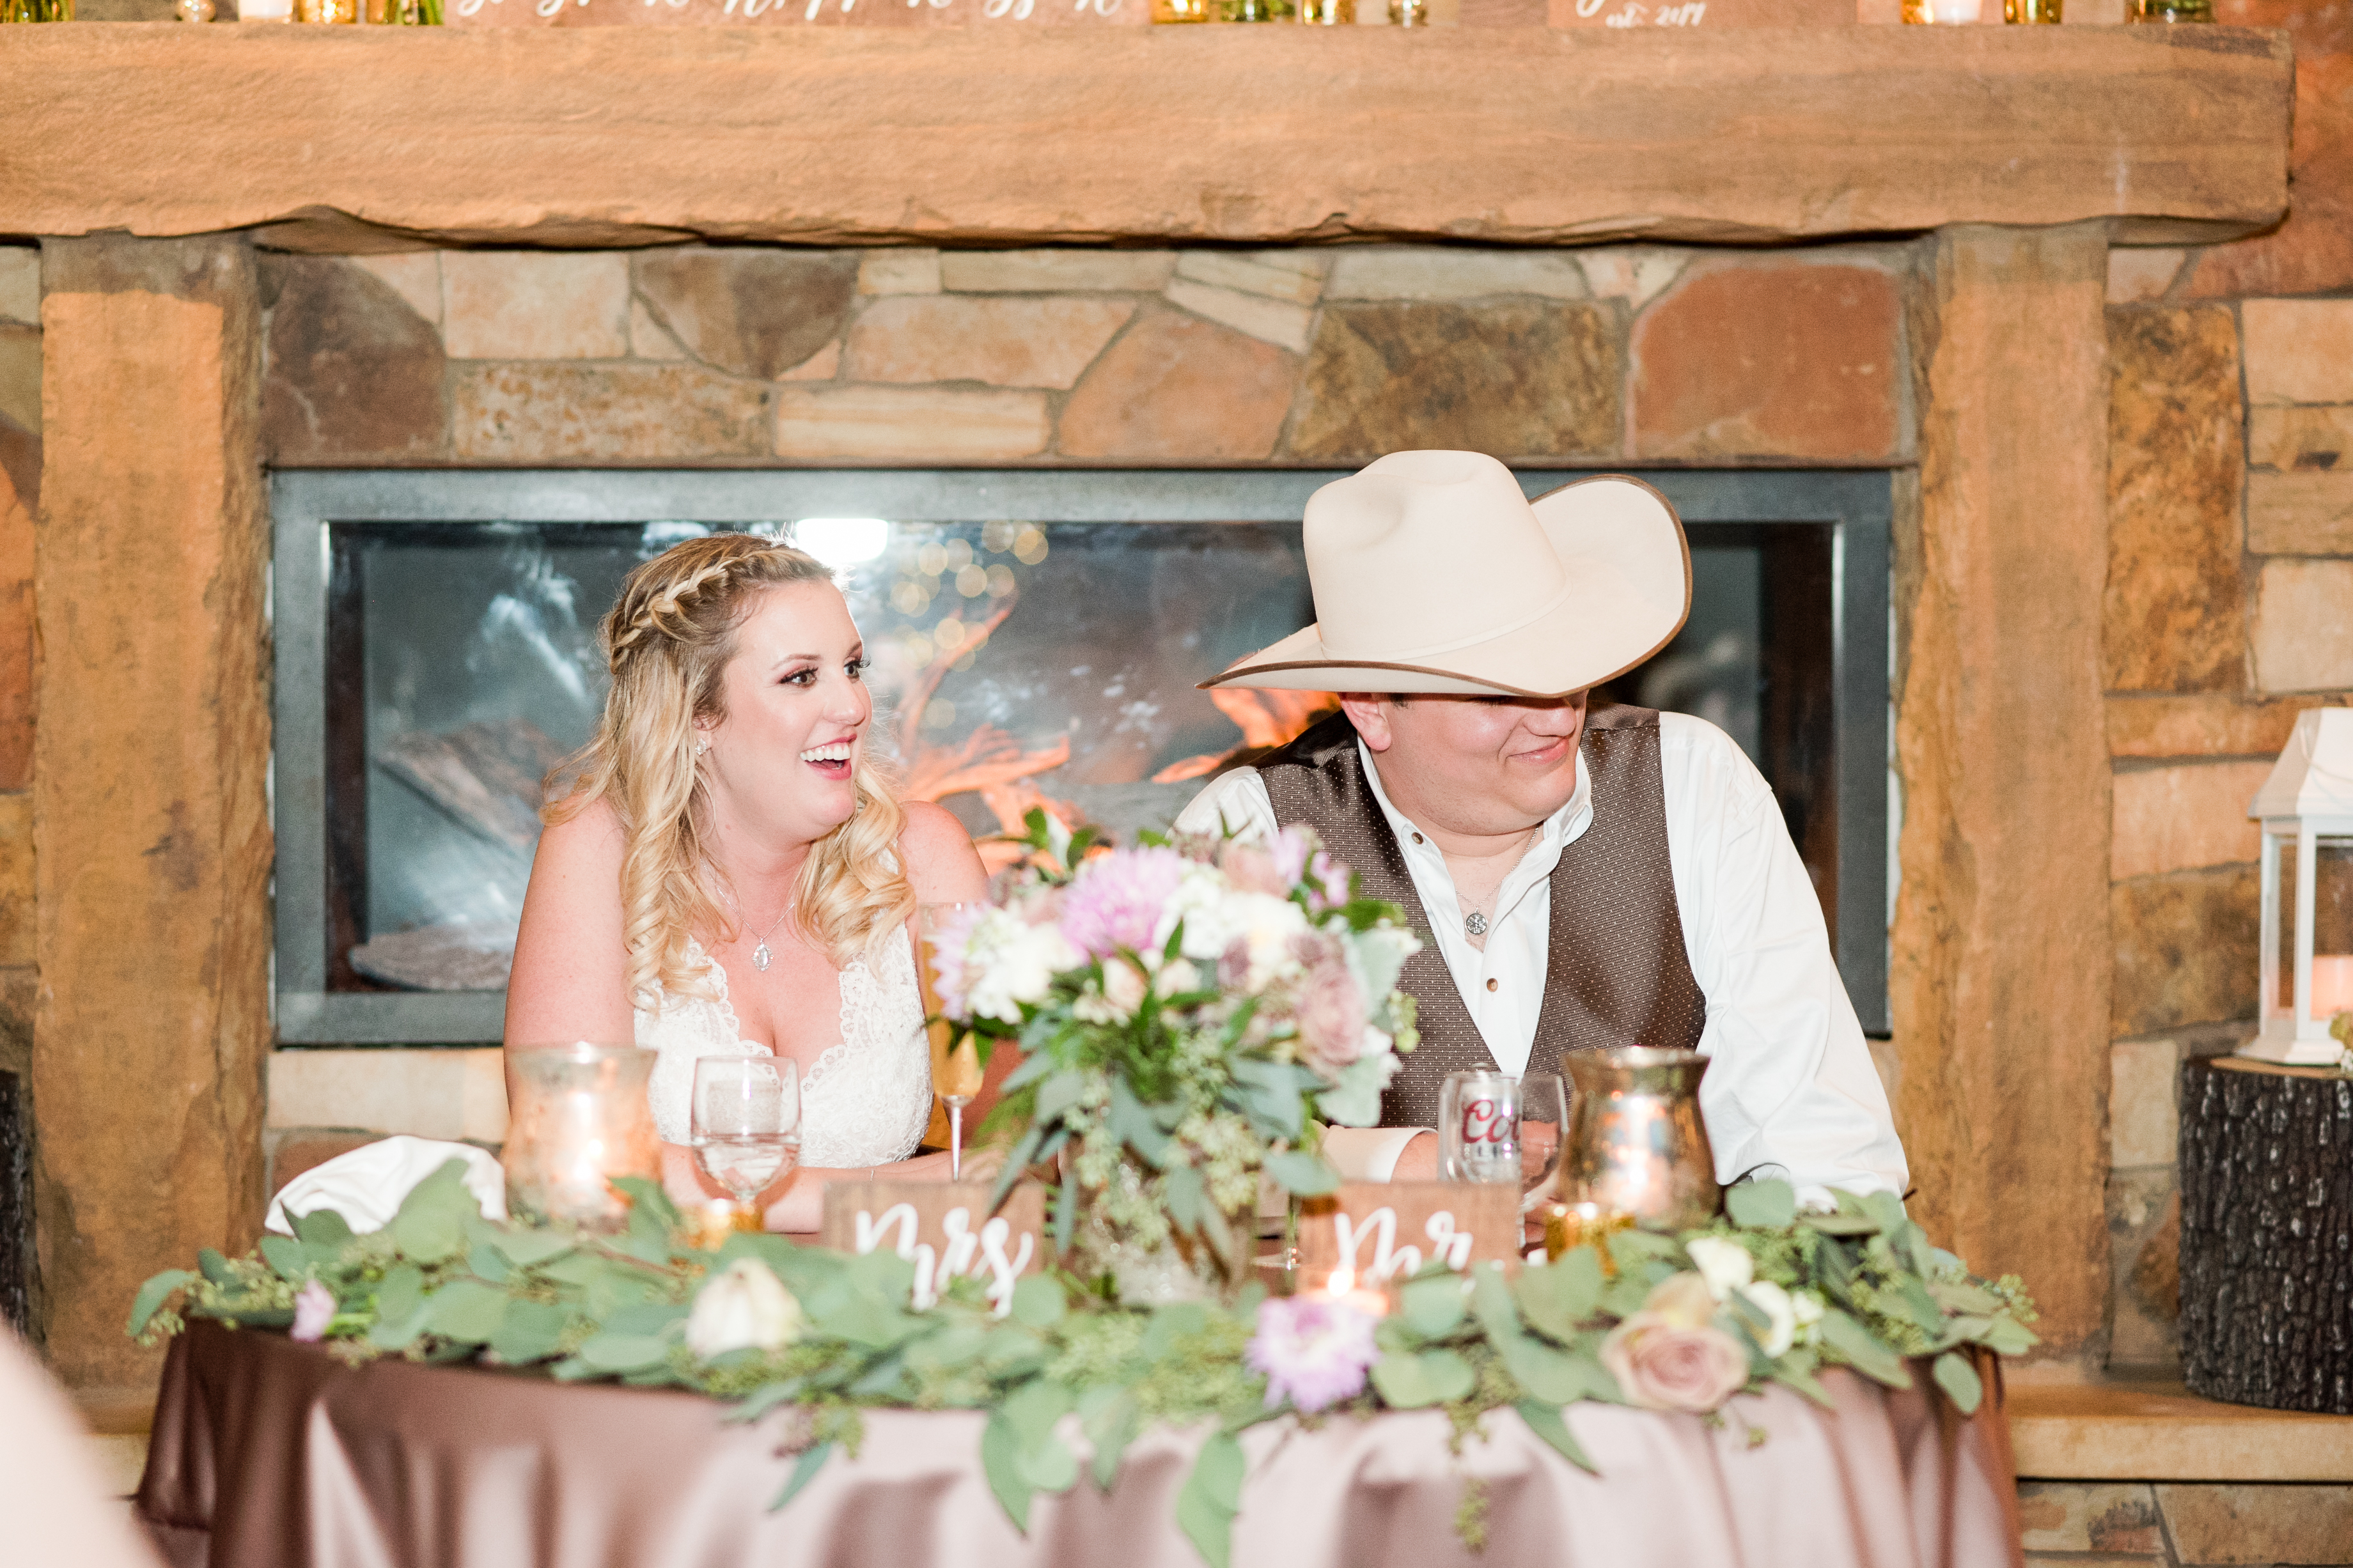 A bride and groom sit at their sweetheart table during their wedding reception at Kindred Oaks in Georgetown, Texas.